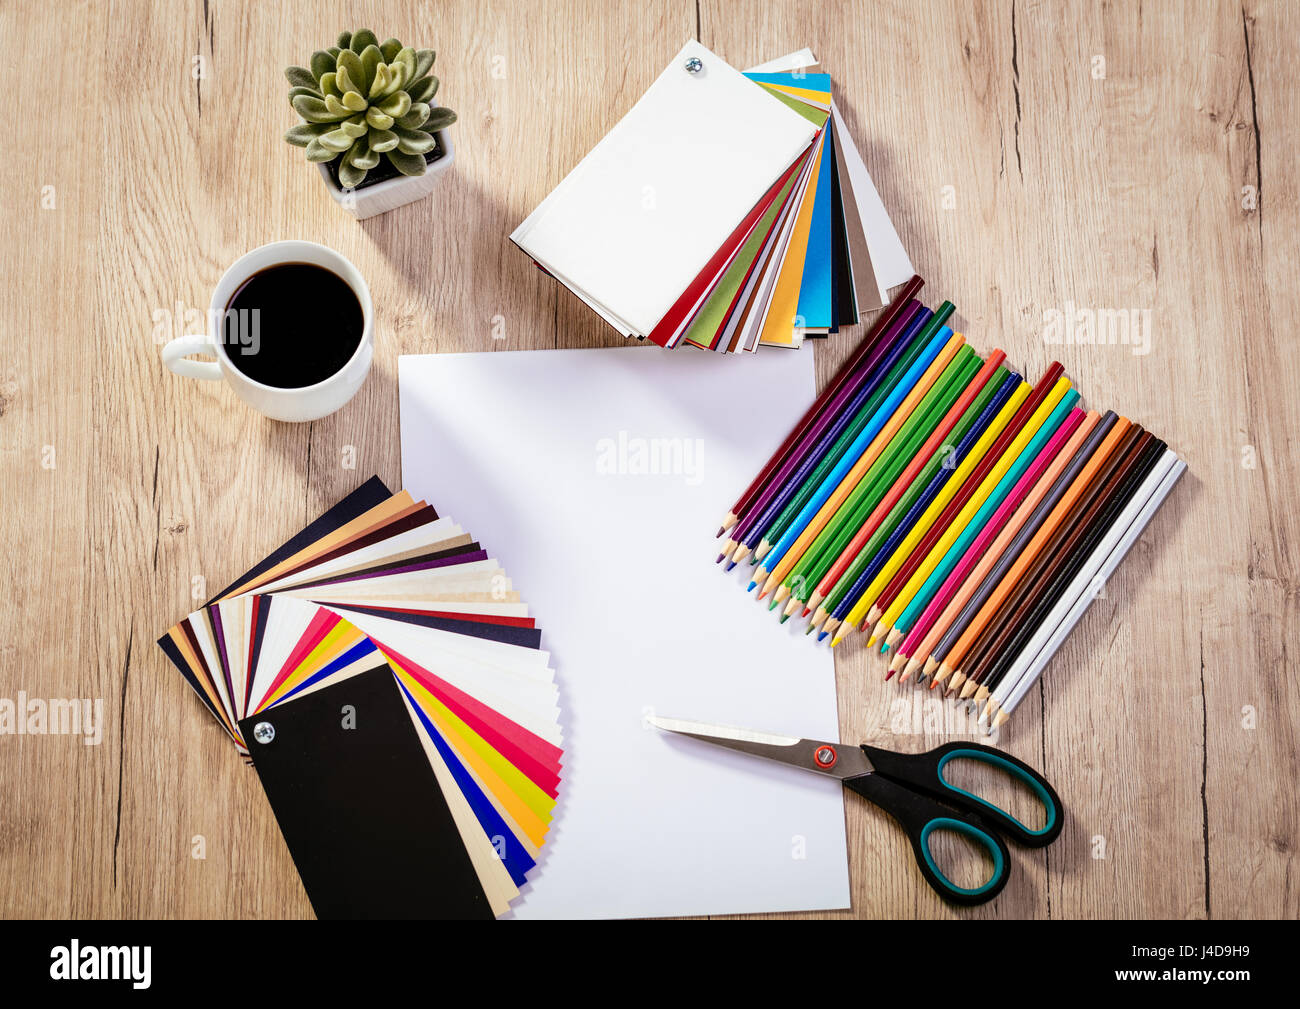 Top View Of A Designer Workspace With Blank Paper And Pallete Color.  Different Office Accessories And Cup Of Coffee Is On The Table.